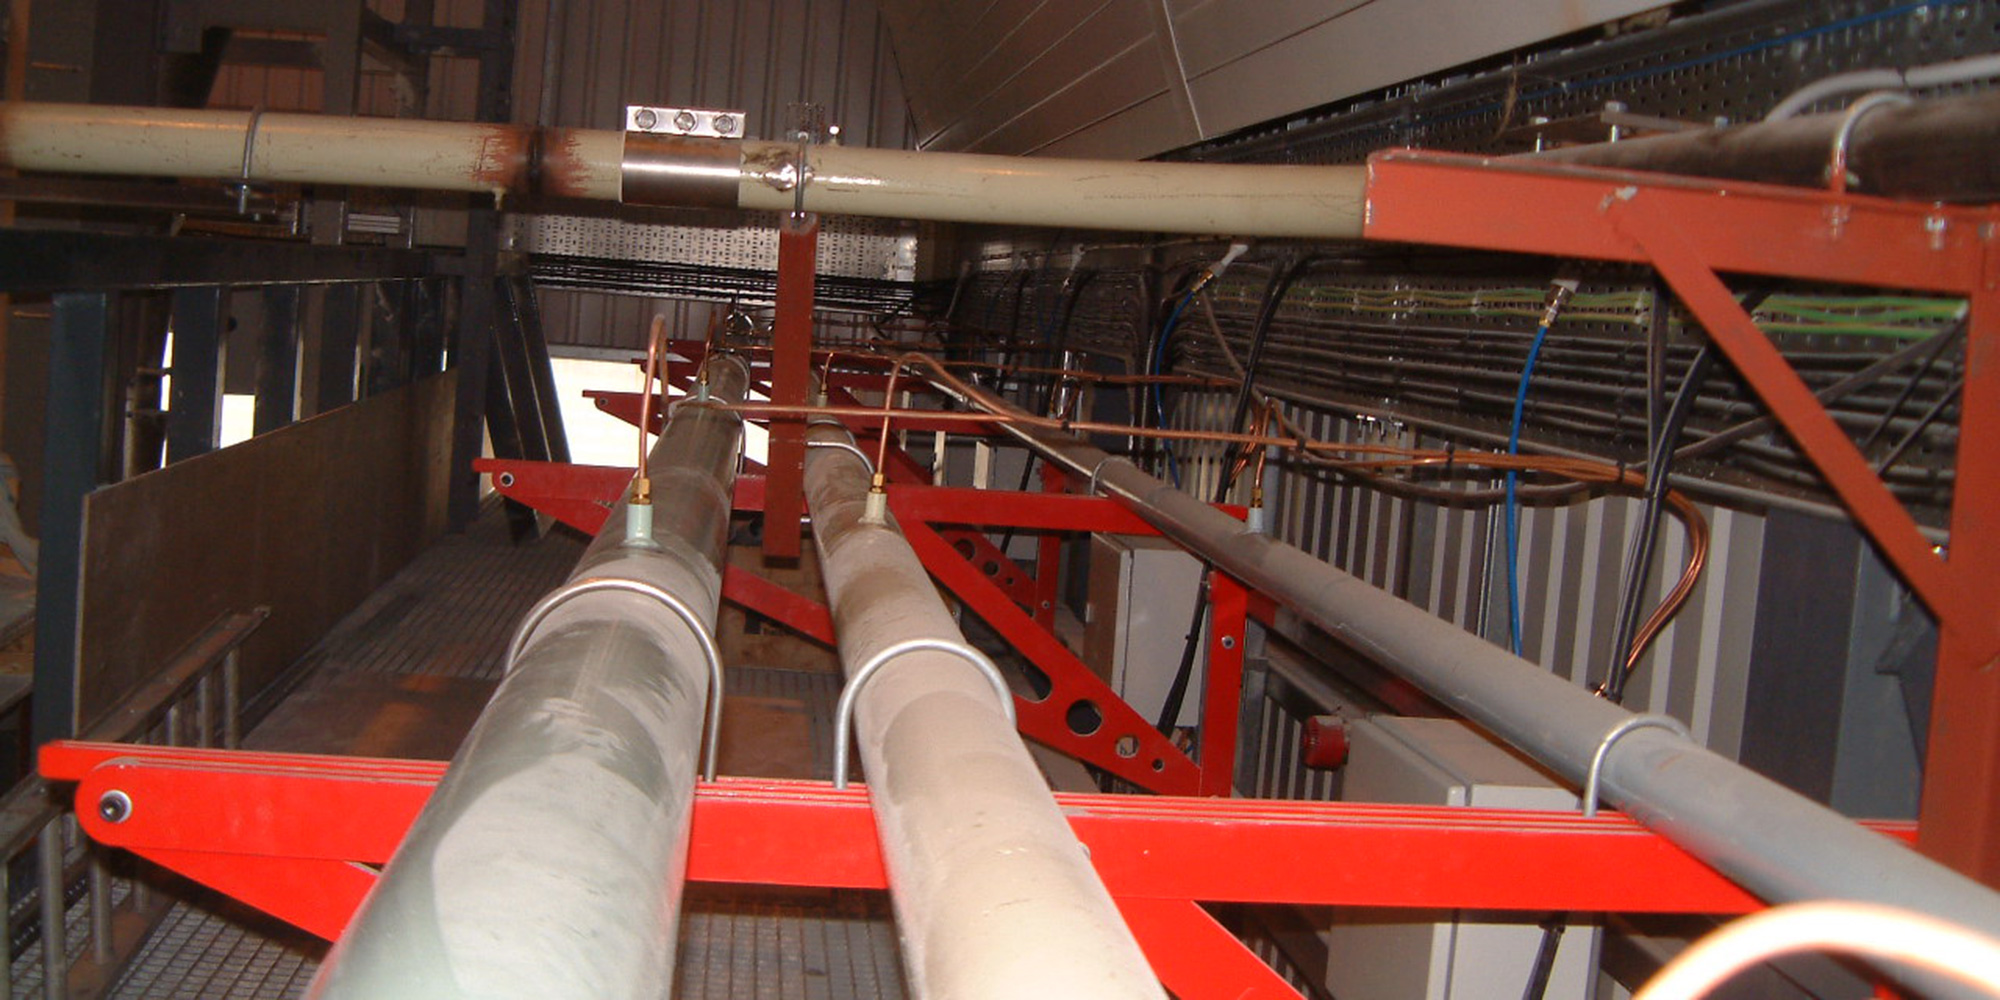 Pneumatic conveying pipelines